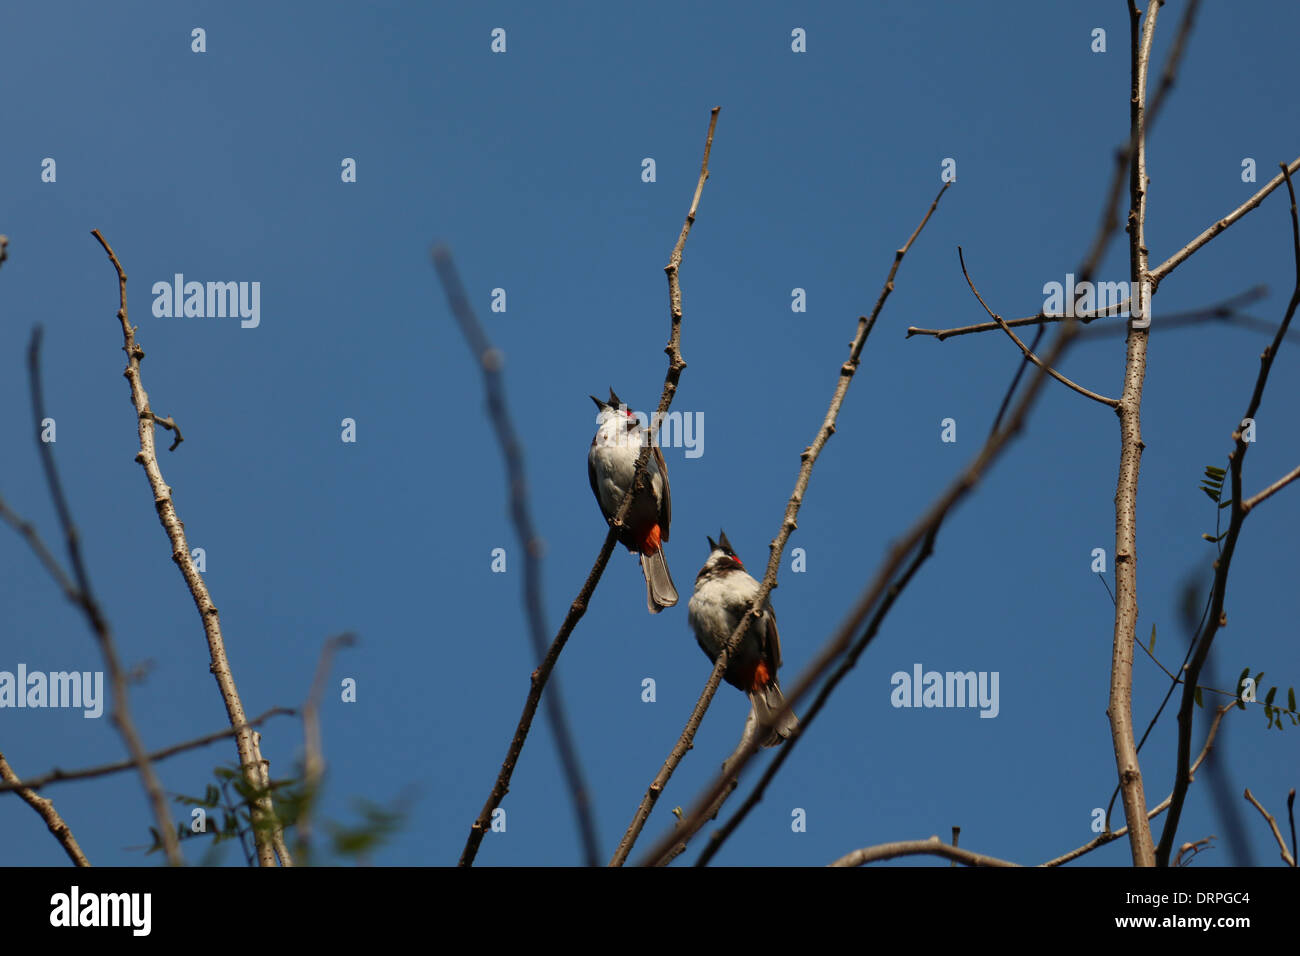 two birds sitting on a tree - Stock Image